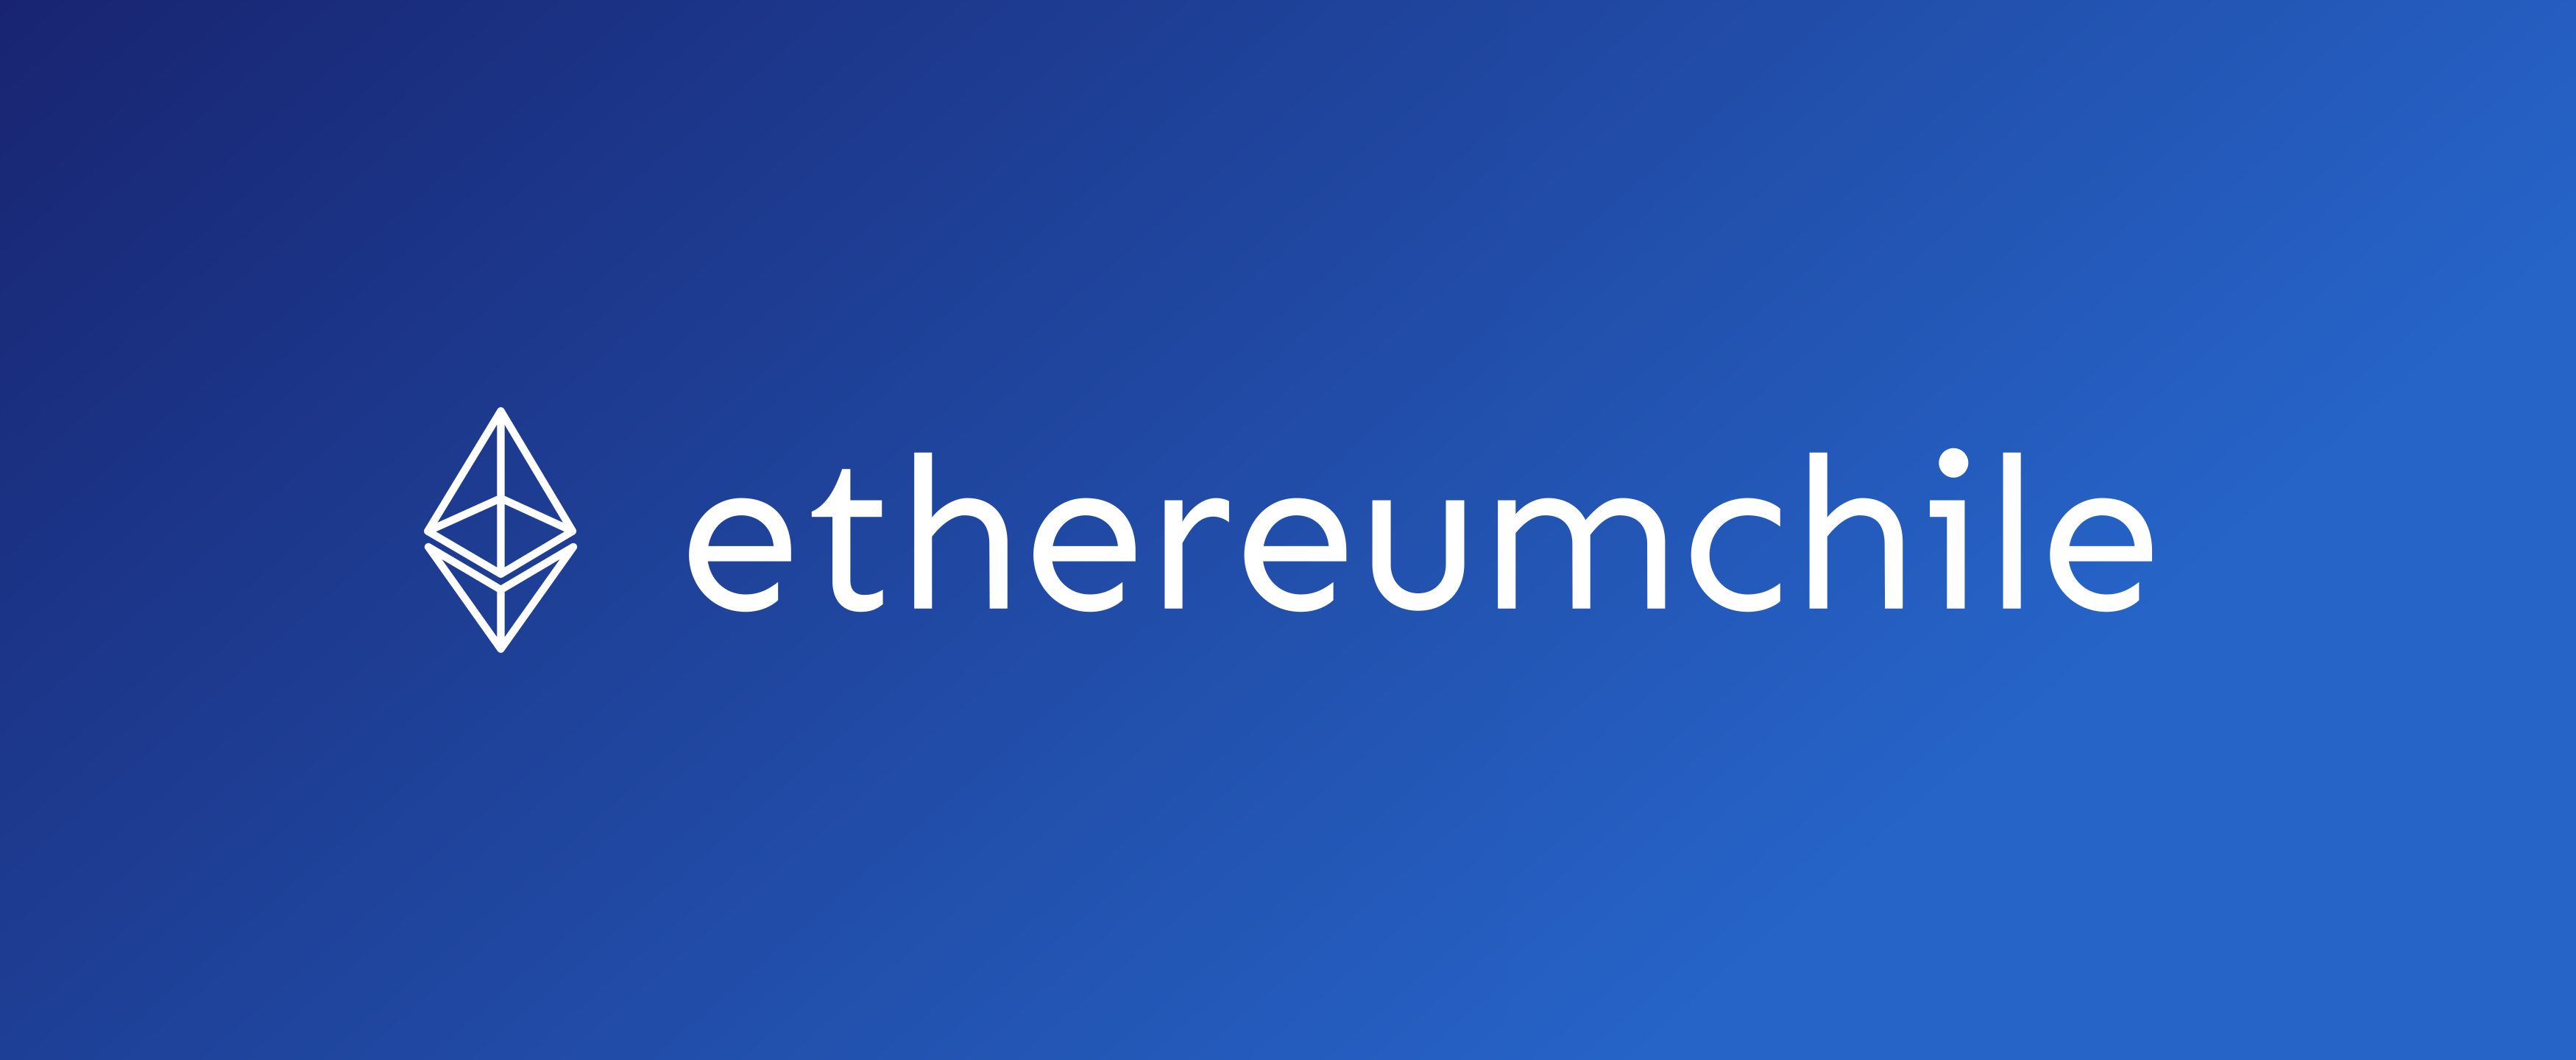 Ethereum Chile